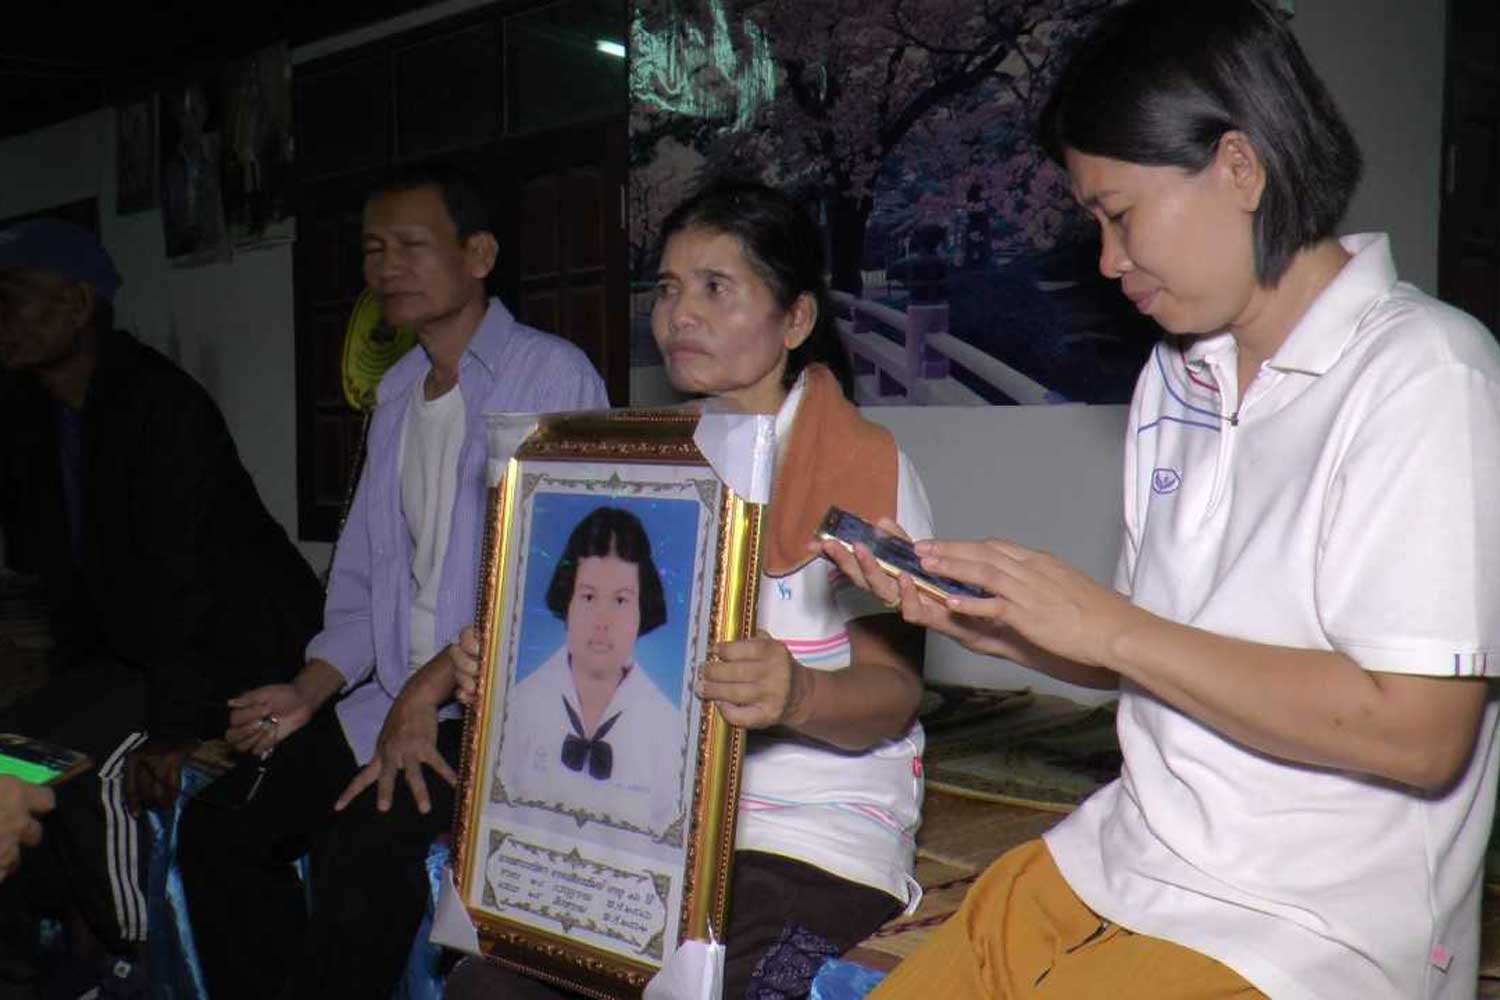 The family of Wanida Atsiangram mourns her sudden death, blamed on papaya salad with raw crab and fermented fish, at her home in Muang district of Buri Ram on Thursday. (Photo by Surachai Piragsa)